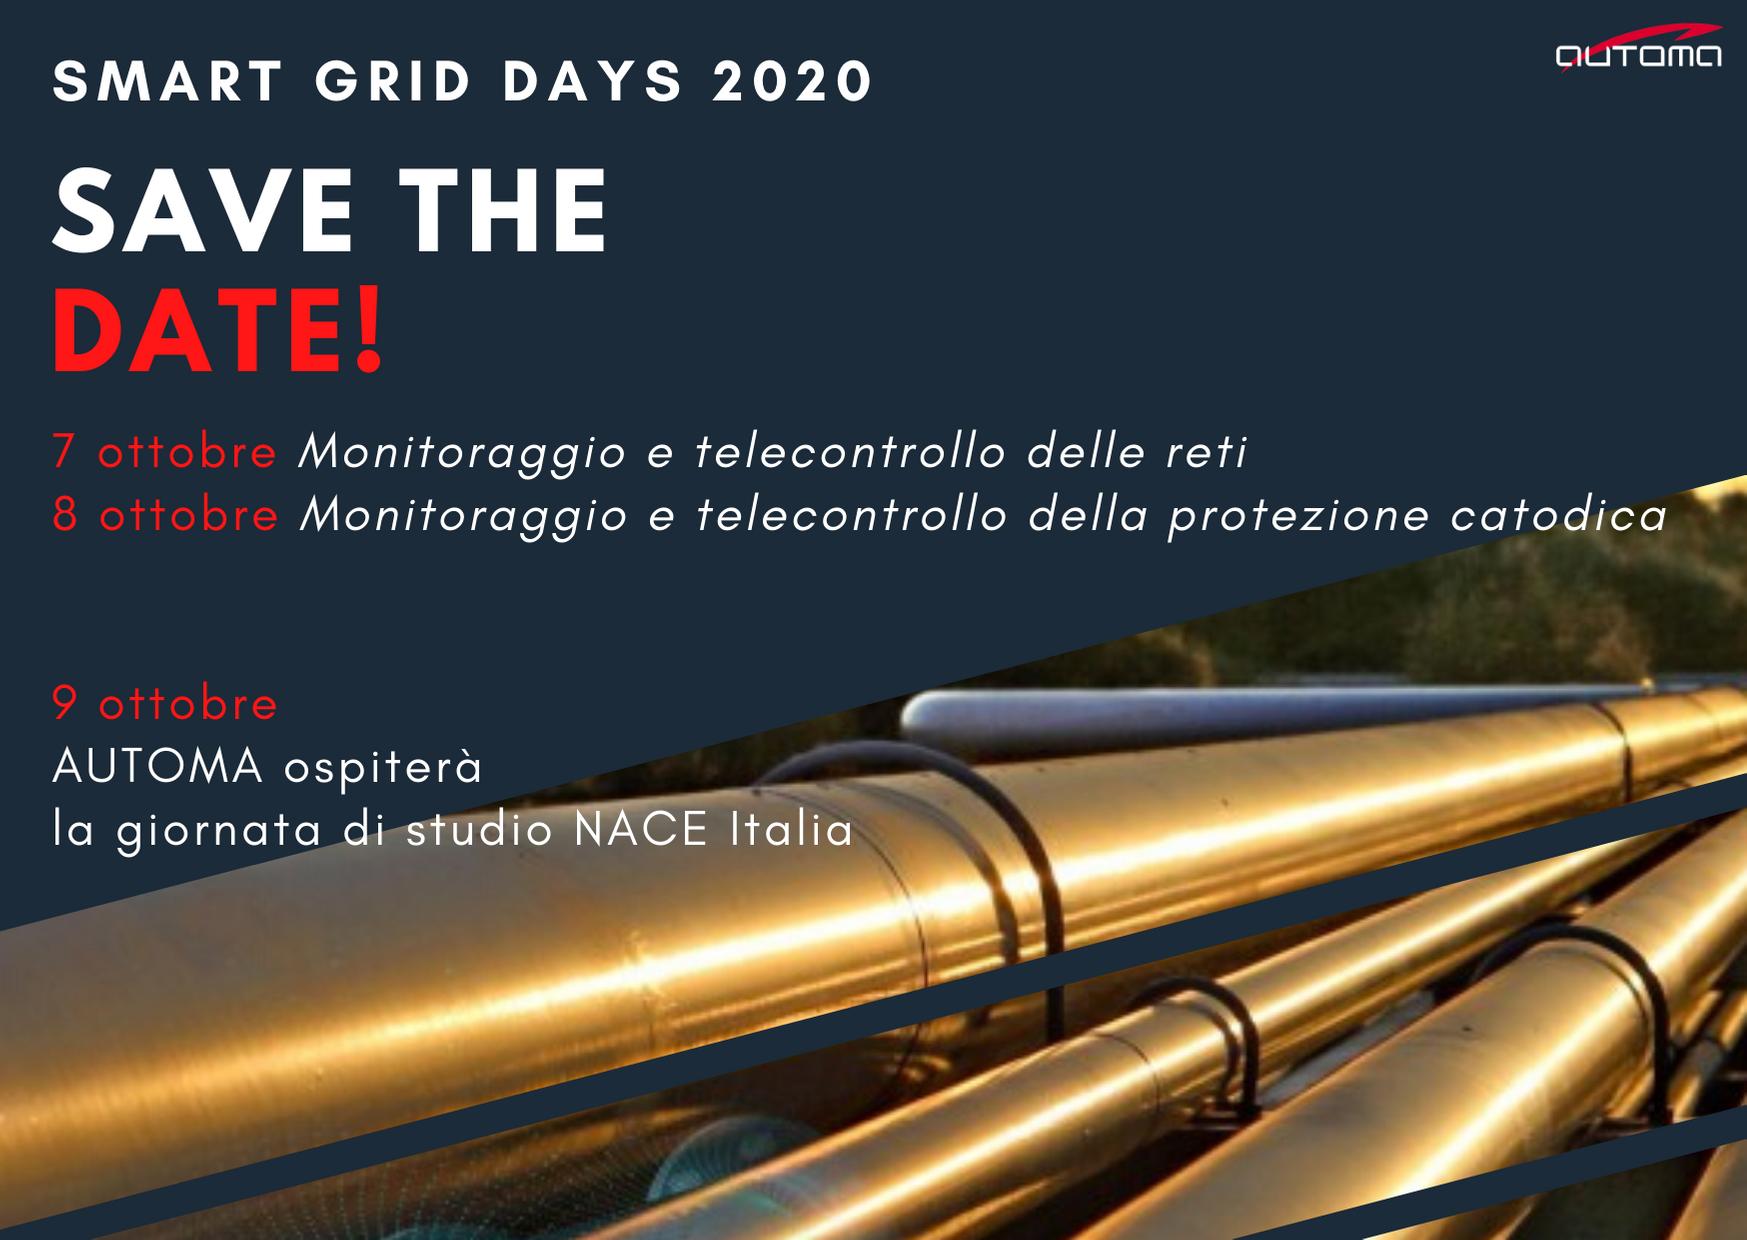 SMART GRID DAYS 2020: the AUTOMA annual event is back